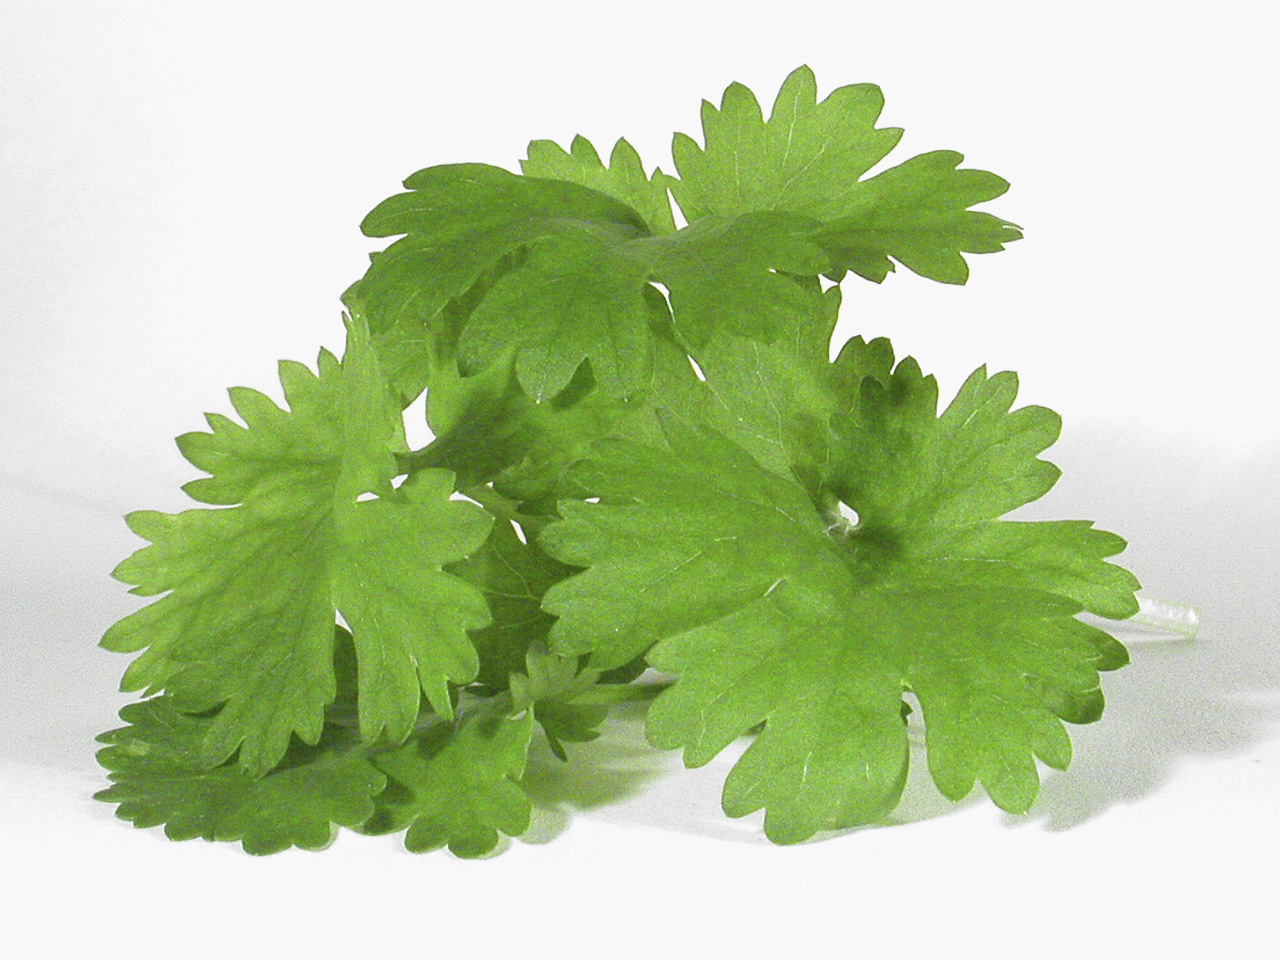 ... ado, here is the recipe for our famous 4-ingredient cilantro pesto